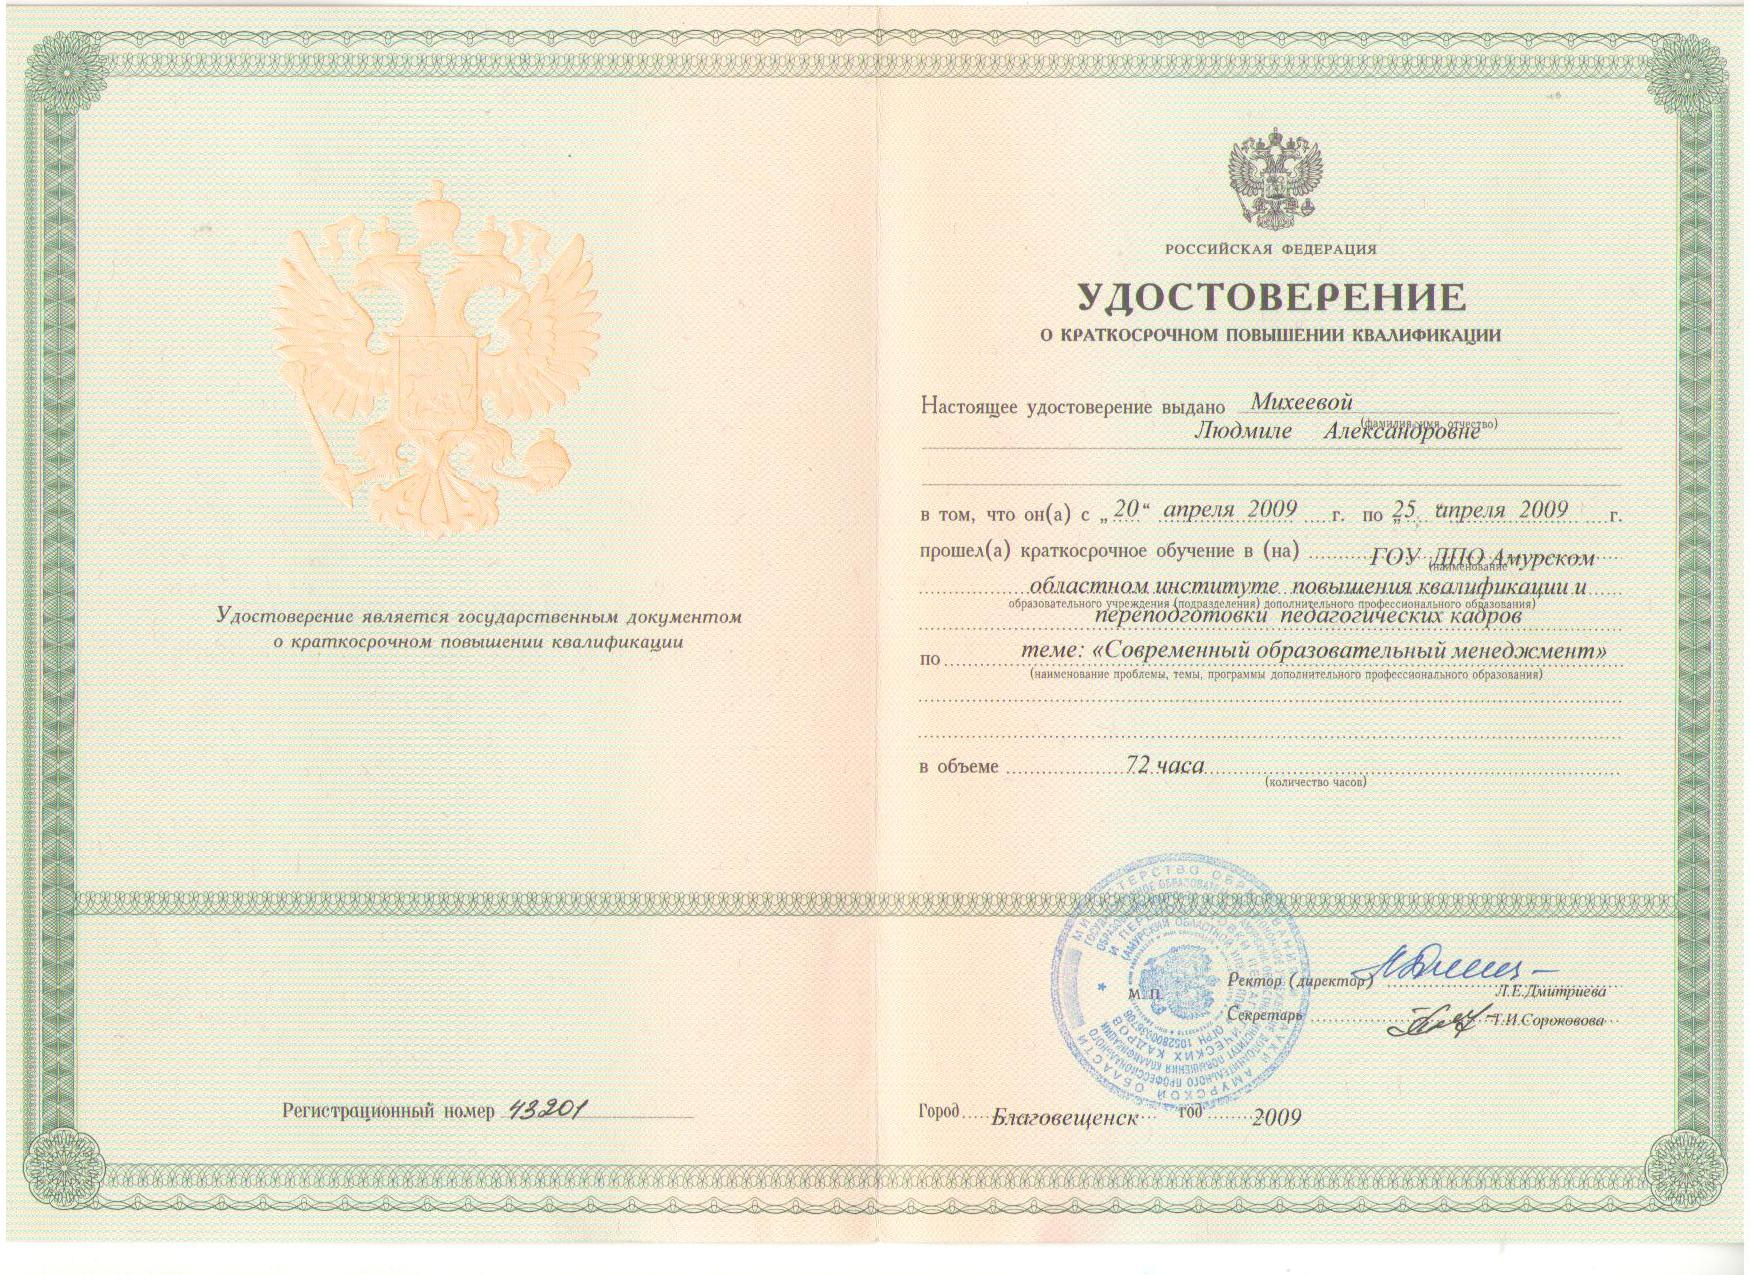 C:\Documents and Settings\Admin\Local Settings\Temporary Internet Files\Content.Word\курсы 001.jpg